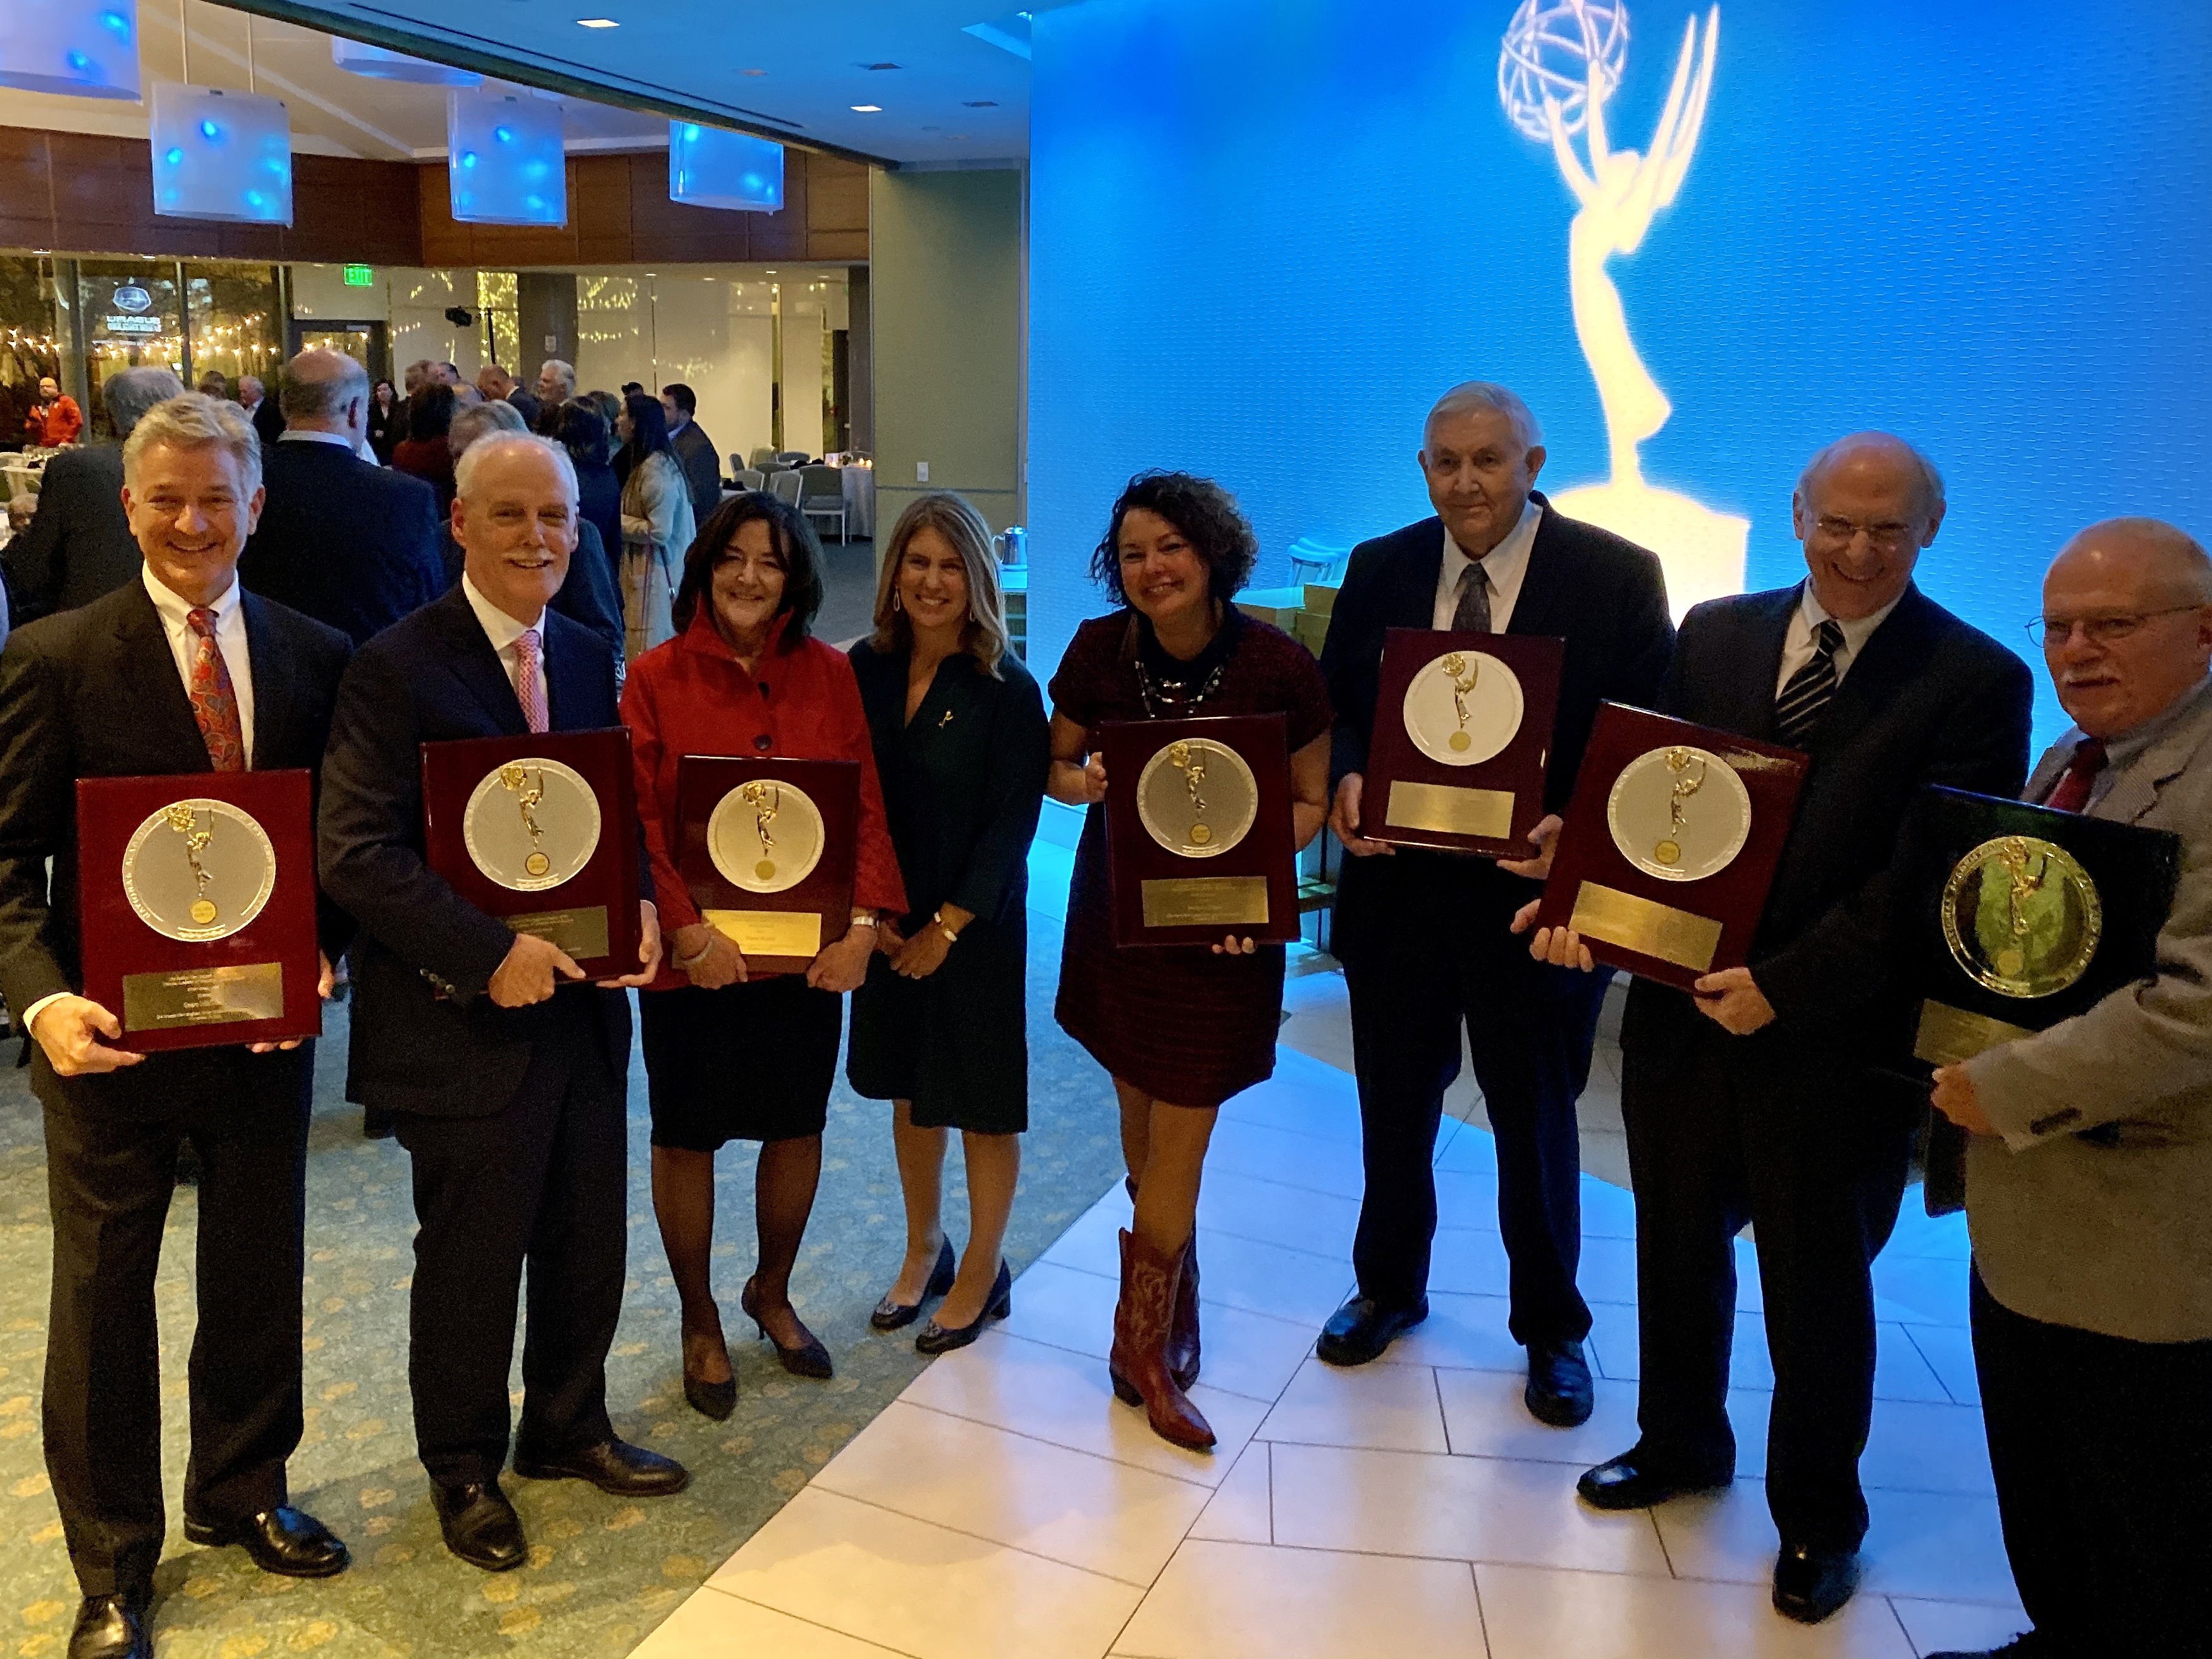 NESN's Sean McGrail Inducted Into NATAS Boston/New England ...